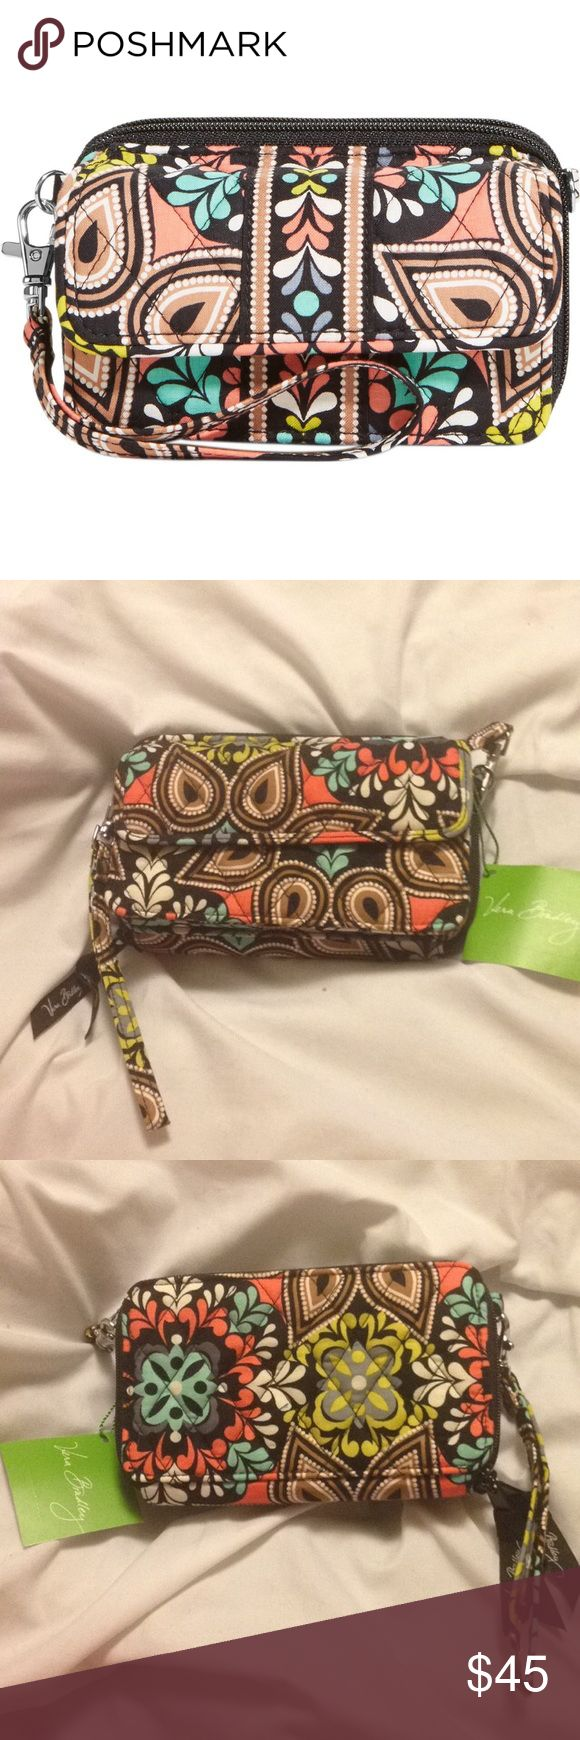 All in One Crossbody for iPhone 6 Brand new with tags - never been used / purchased at Vera Bradley store : print: Sierra / comes with wristlet strap and crossbody strap (both straps are detachable) / 3 in 1 wallet - wristlet - crossbody / front magnetic close pocket perfect fit for iPhone 6  / one zip compartment has two slip pockets and a zipped coin pocket / other zip compartment has large bill pocket, 8 cc slots and clear ID slot / crossbody strap is adjustable Vera Bradley Bags…